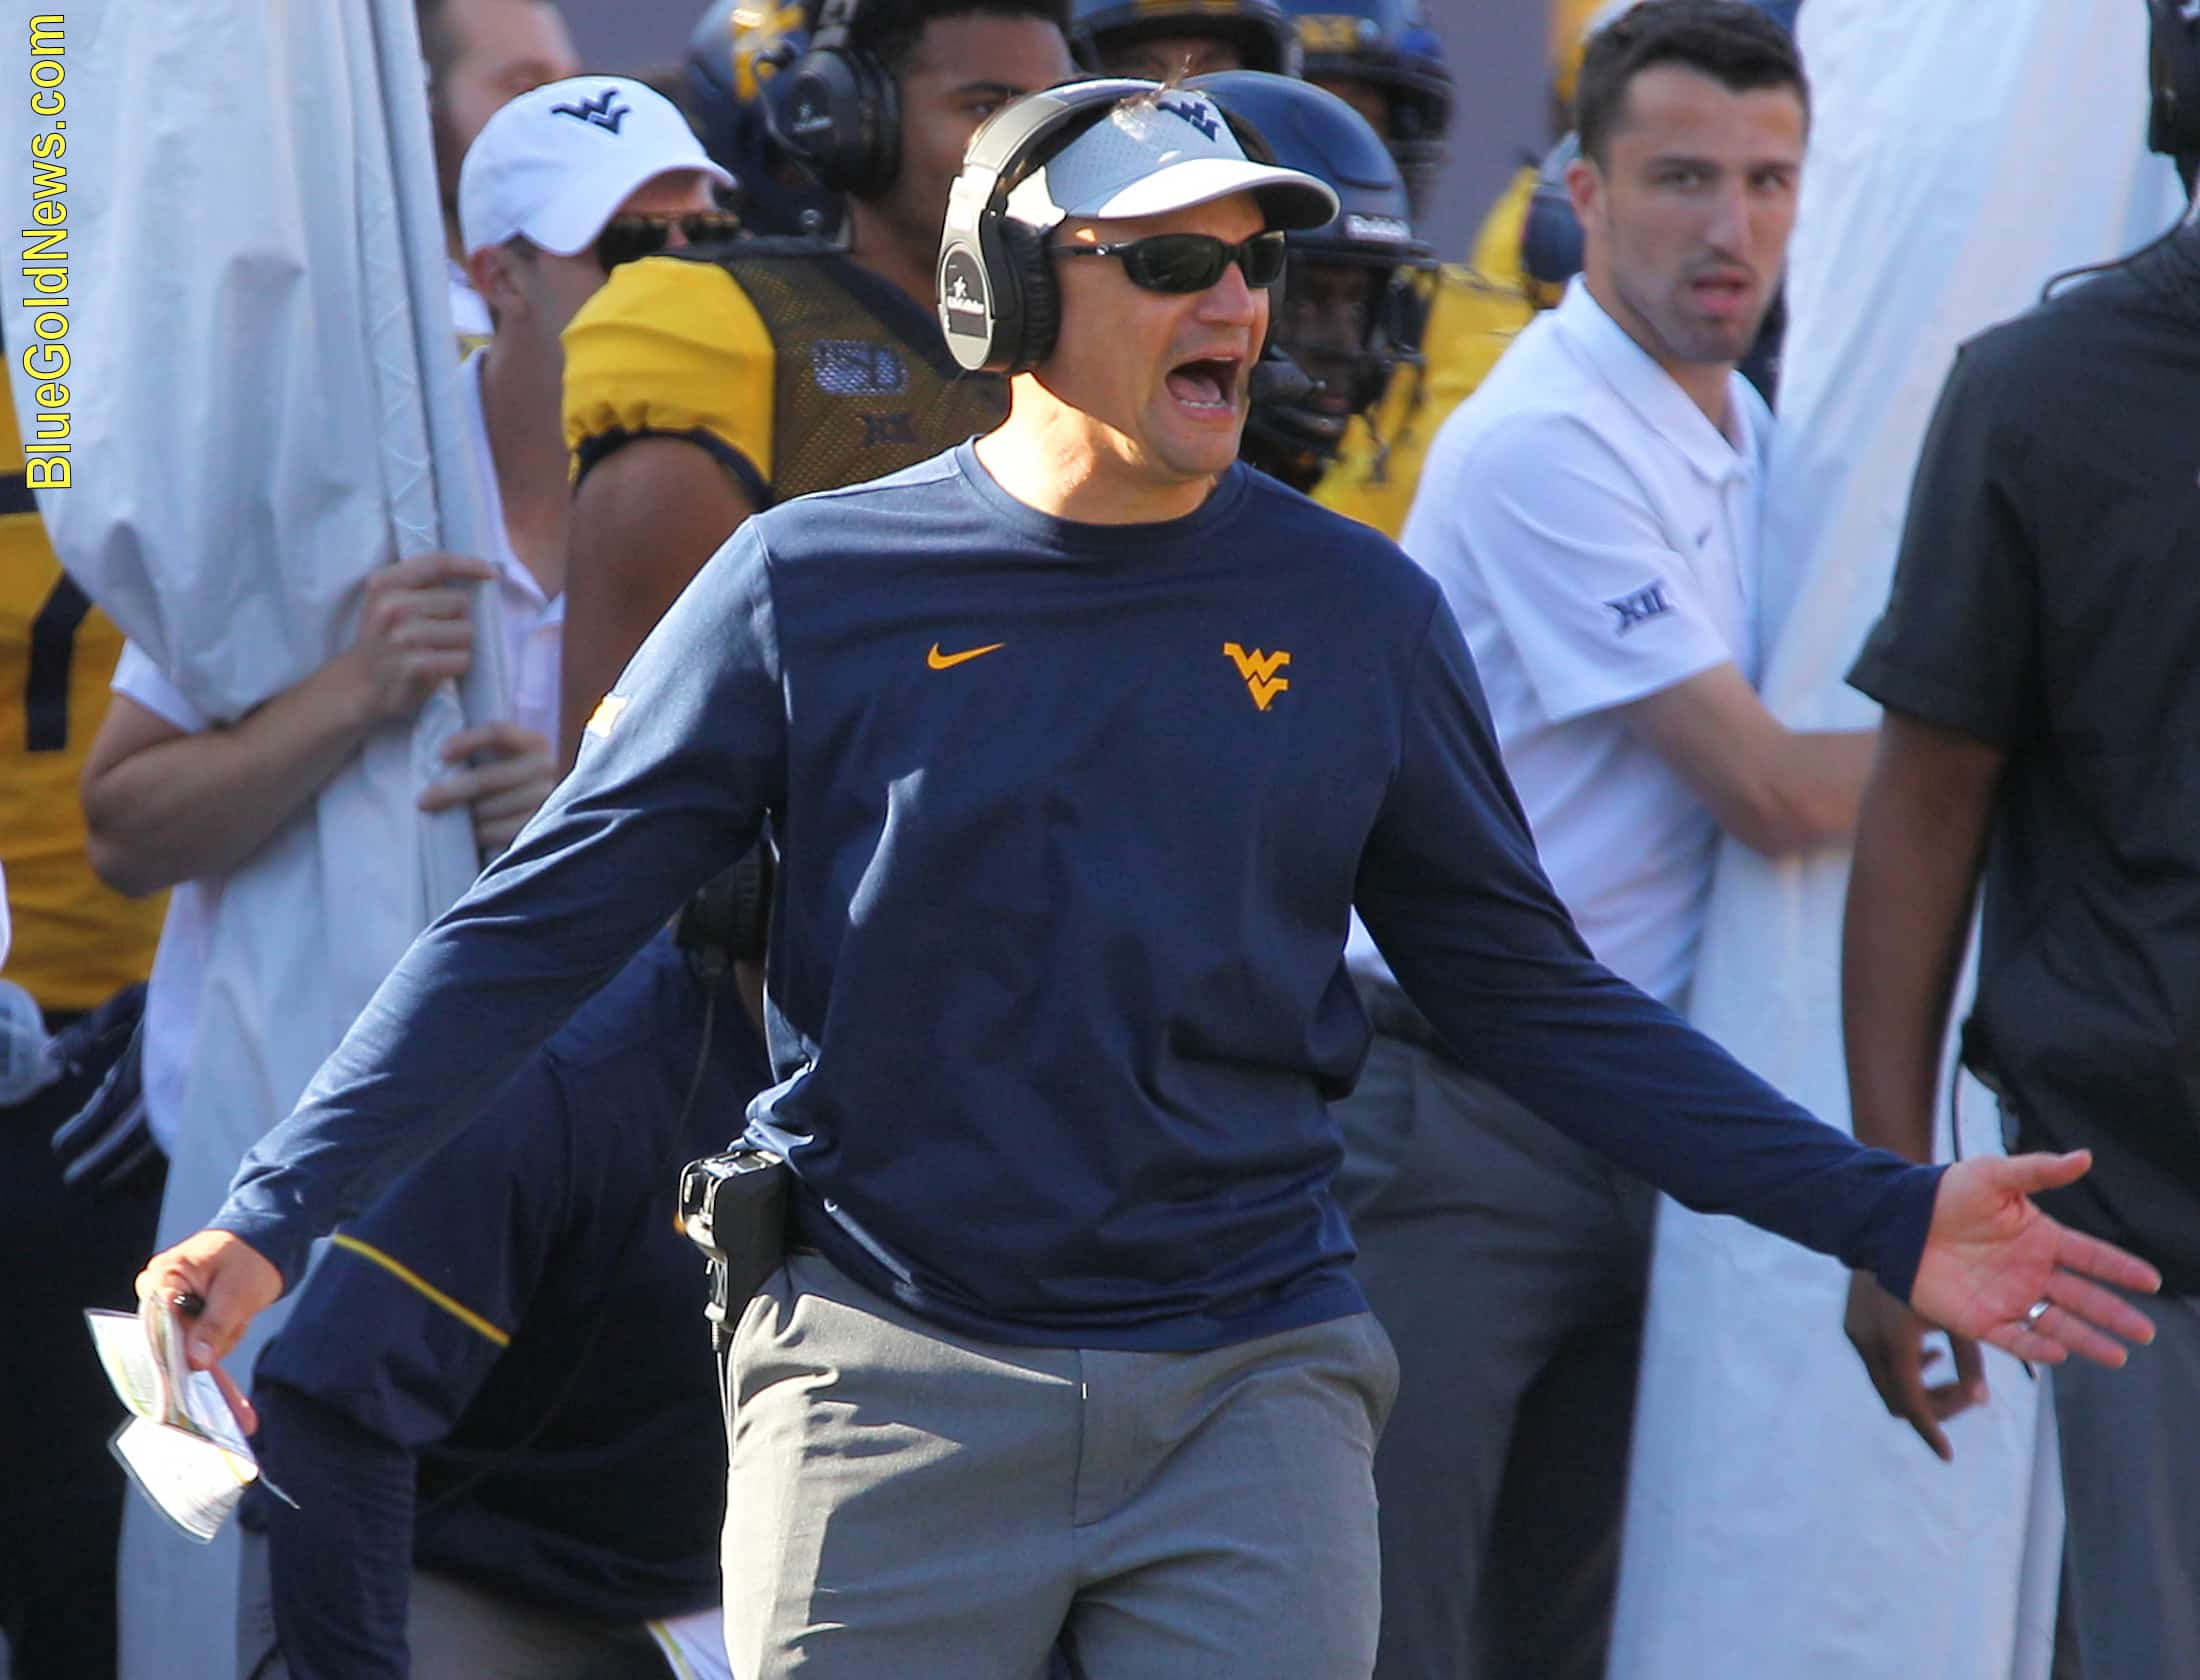 West Virginia head coach Neal Brown expresses displeasure at the pace of the WVU offense